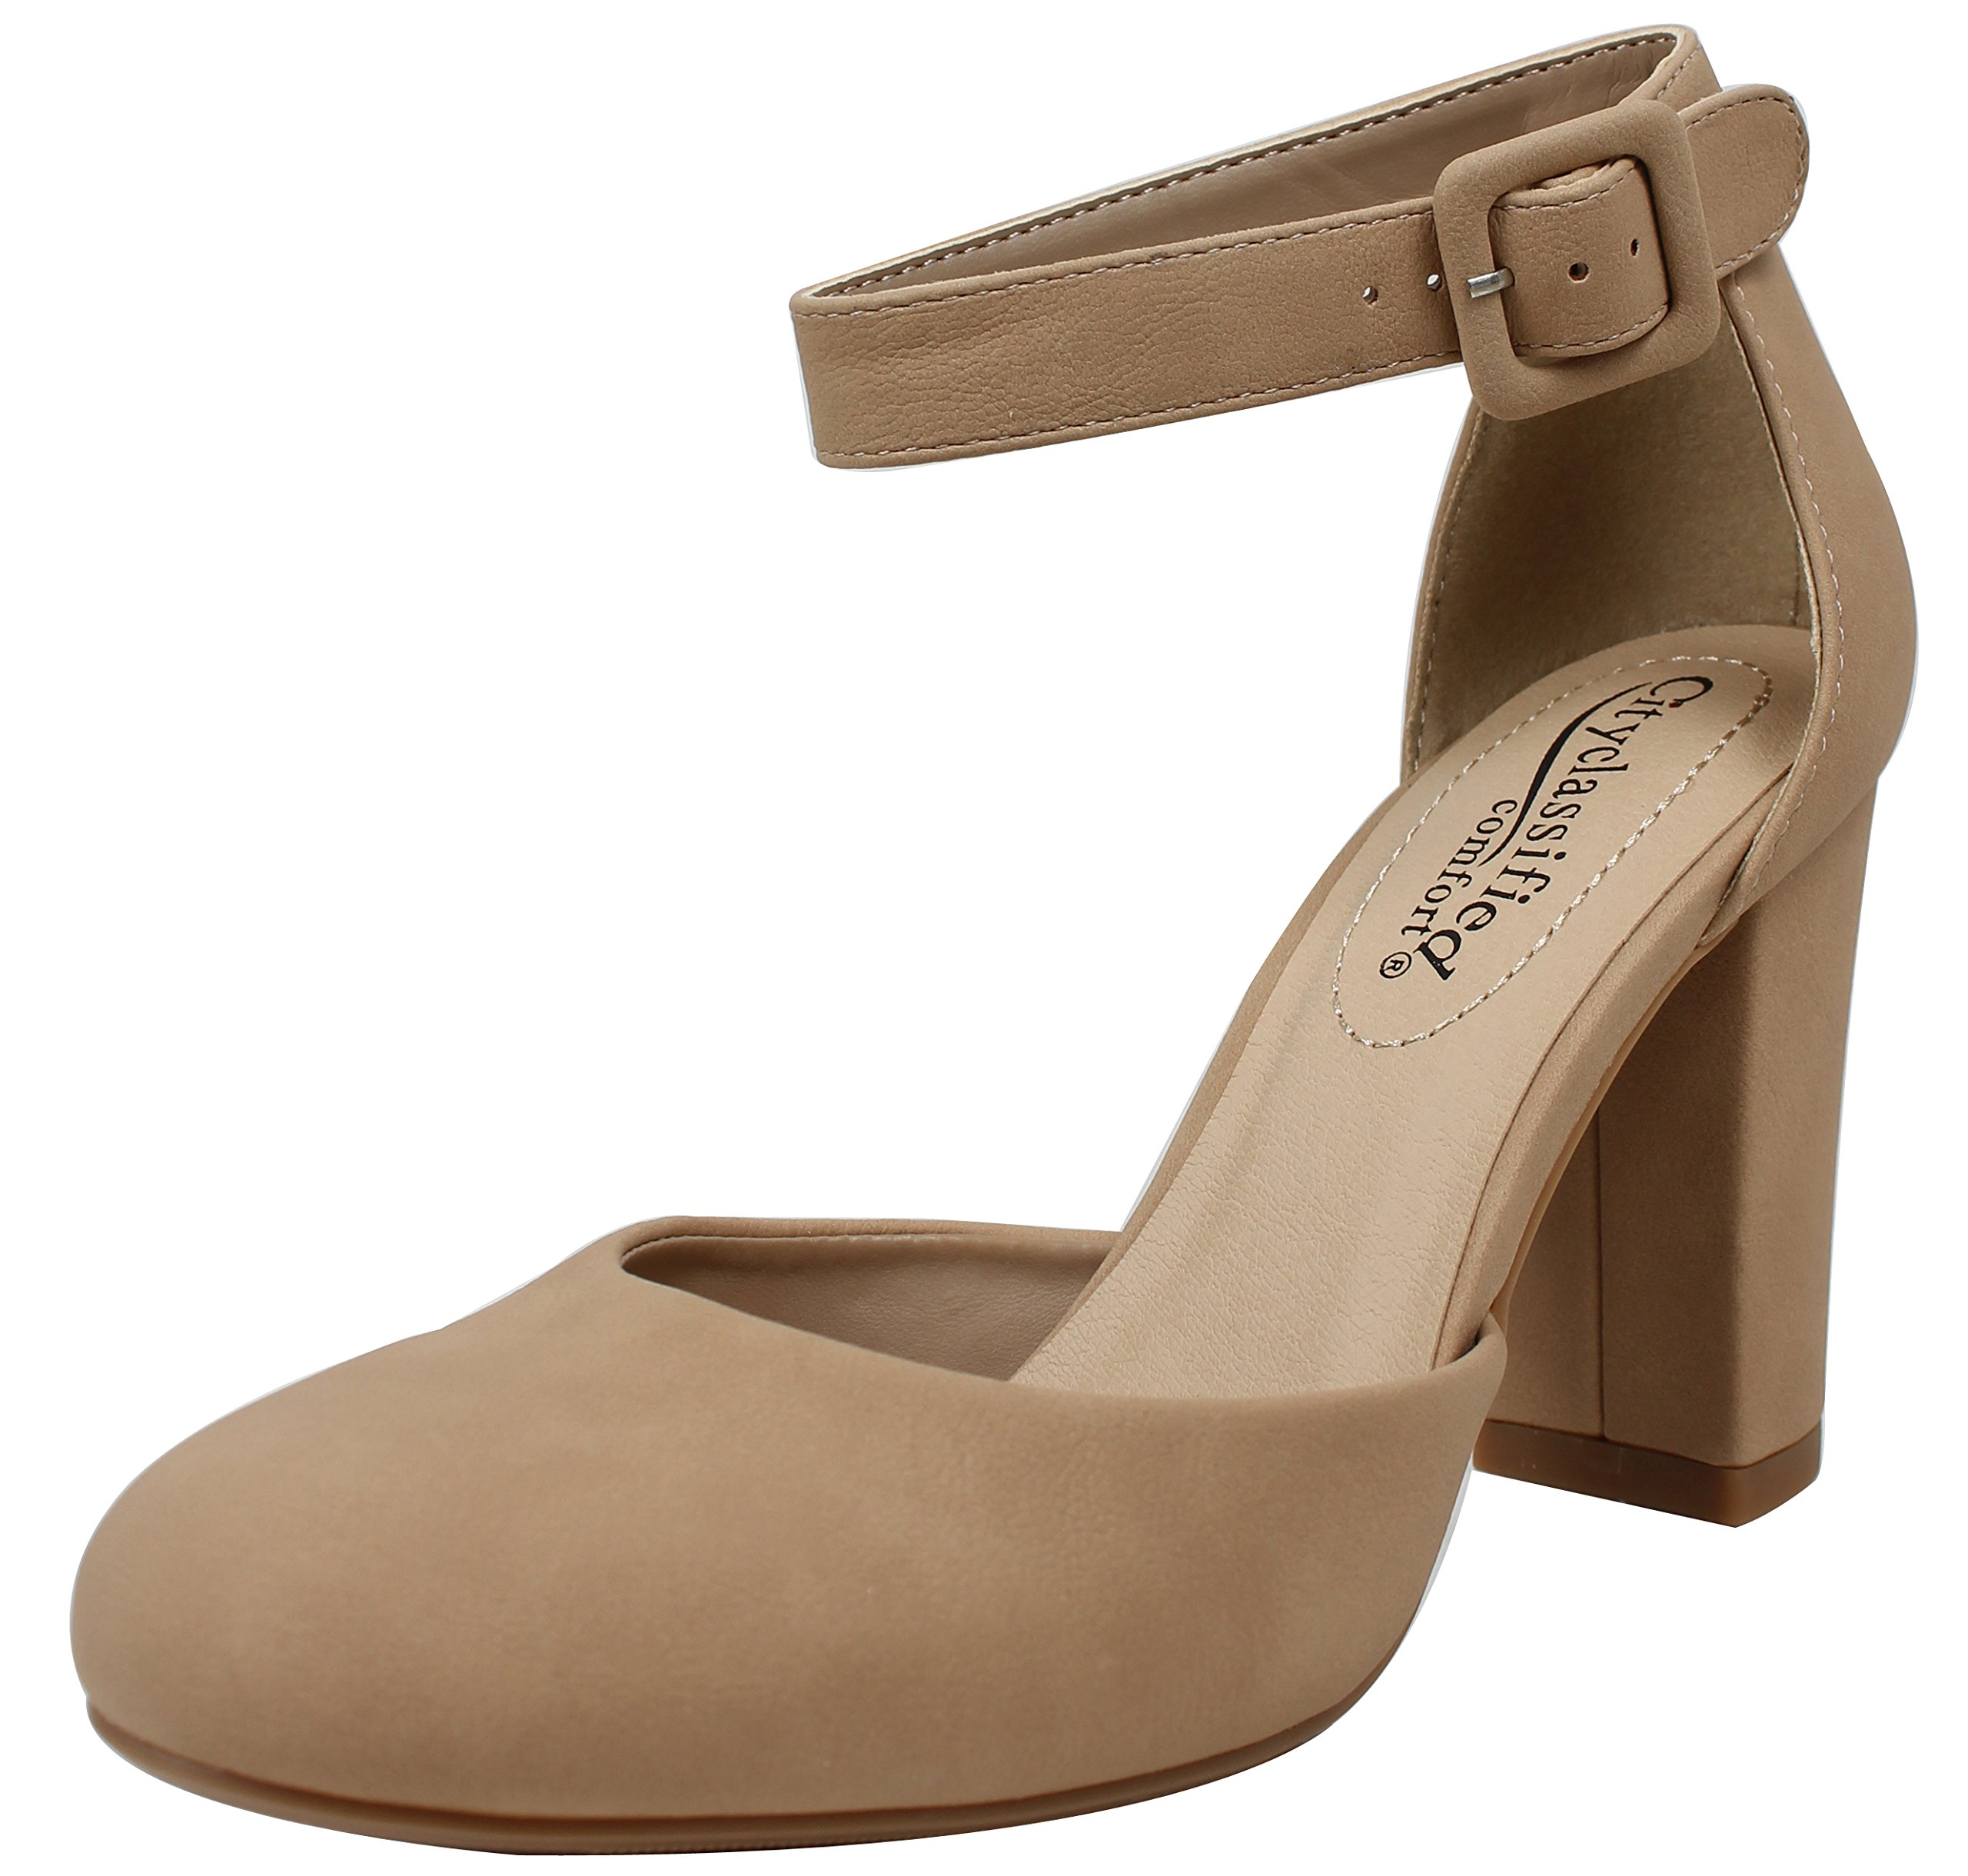 21939ac41bf2 Galleon - City Classified Women s Closed Toe Ankle Strap Block Heel ...